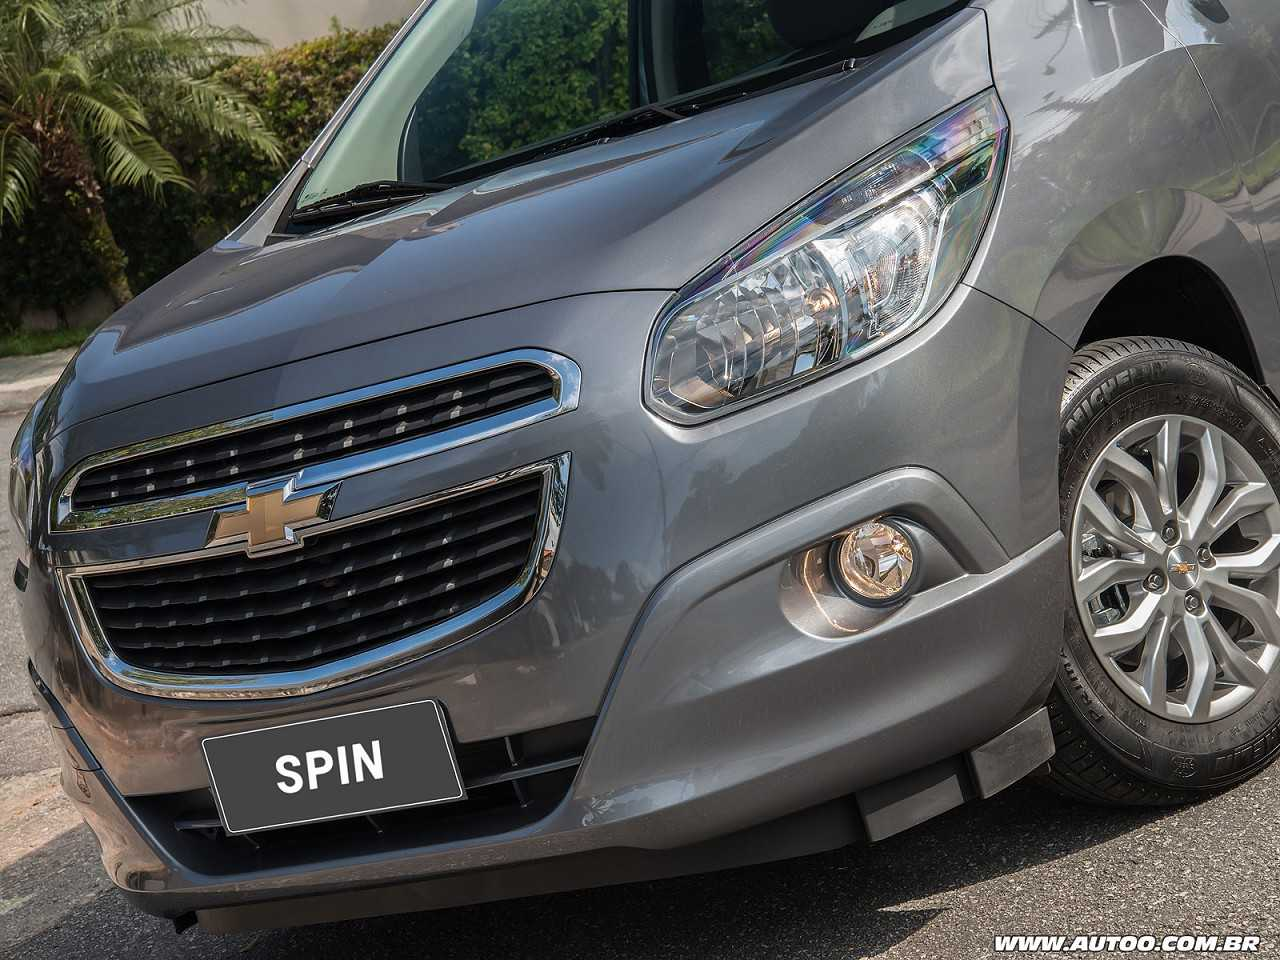 chevrolet spin facelift with 381 8 on Chevrolet Cars At Auto Expo 2016 together with Chevrolet Enjoy Range Now Starts At Rs 4 99 Lakh In India besides Chevrolet Spin 2017 Facelift Spin likewise 2019 Chevrolet Spark Activ Hatchback also Chevrolet Spin Evolue Douceur Amerique Sud.